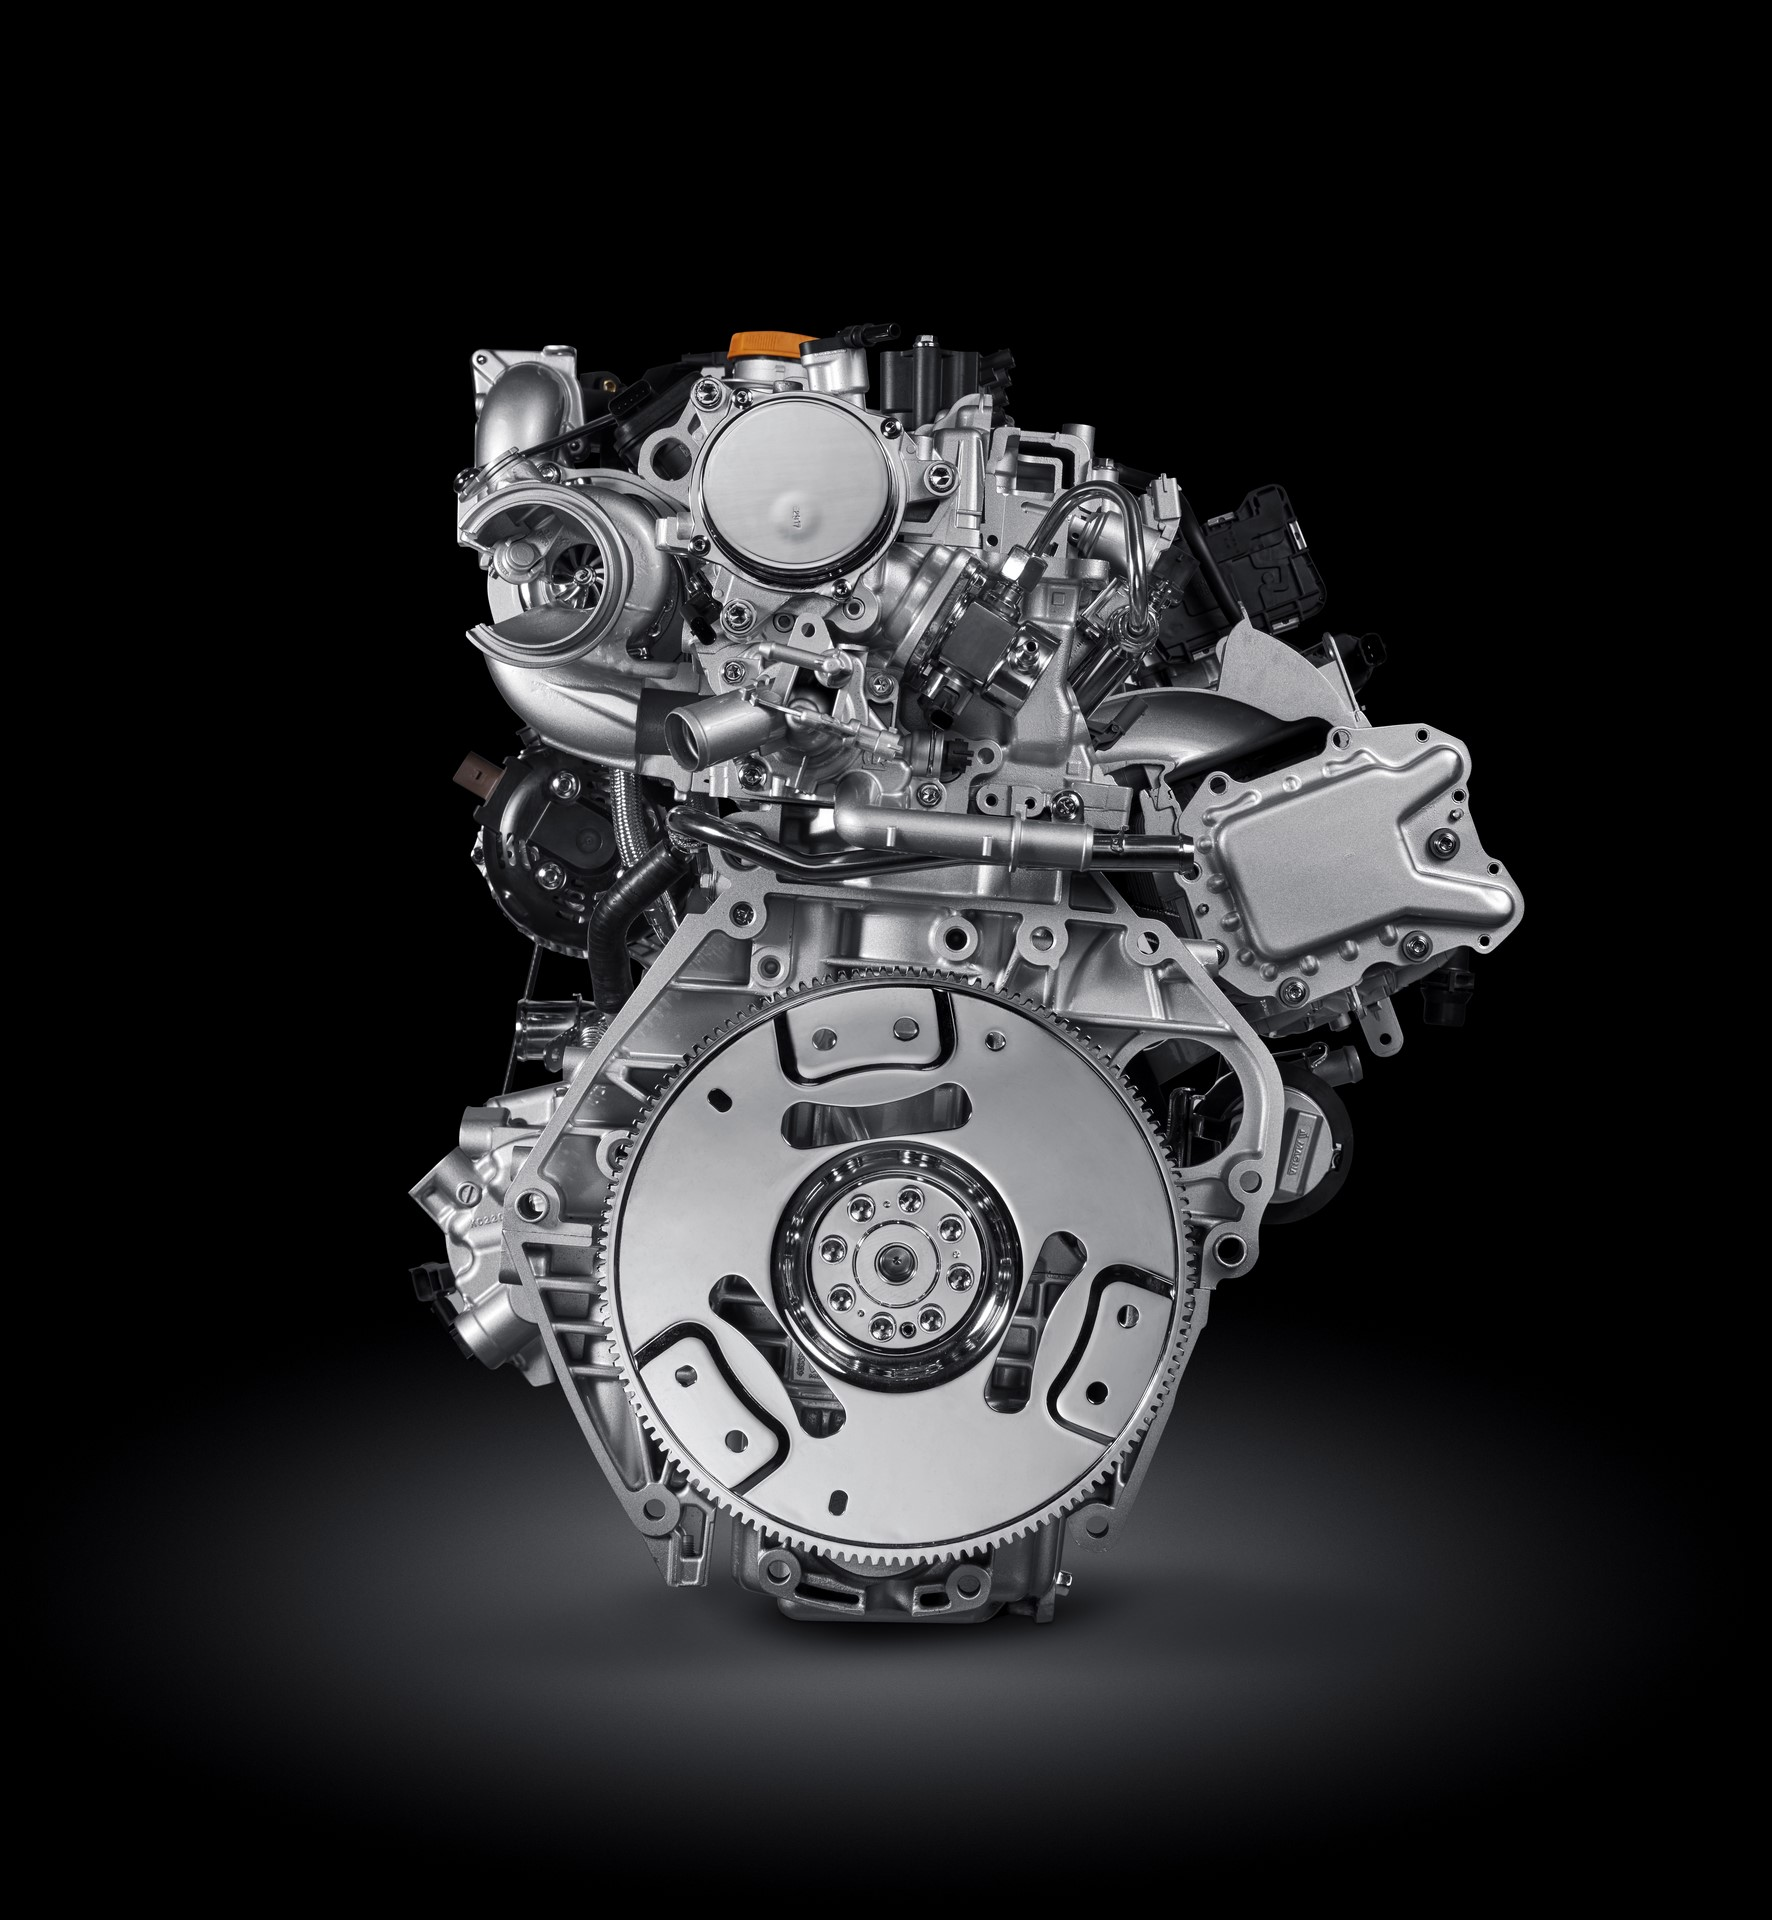 New-13L-Turbo-4-cylinder-150HP_06